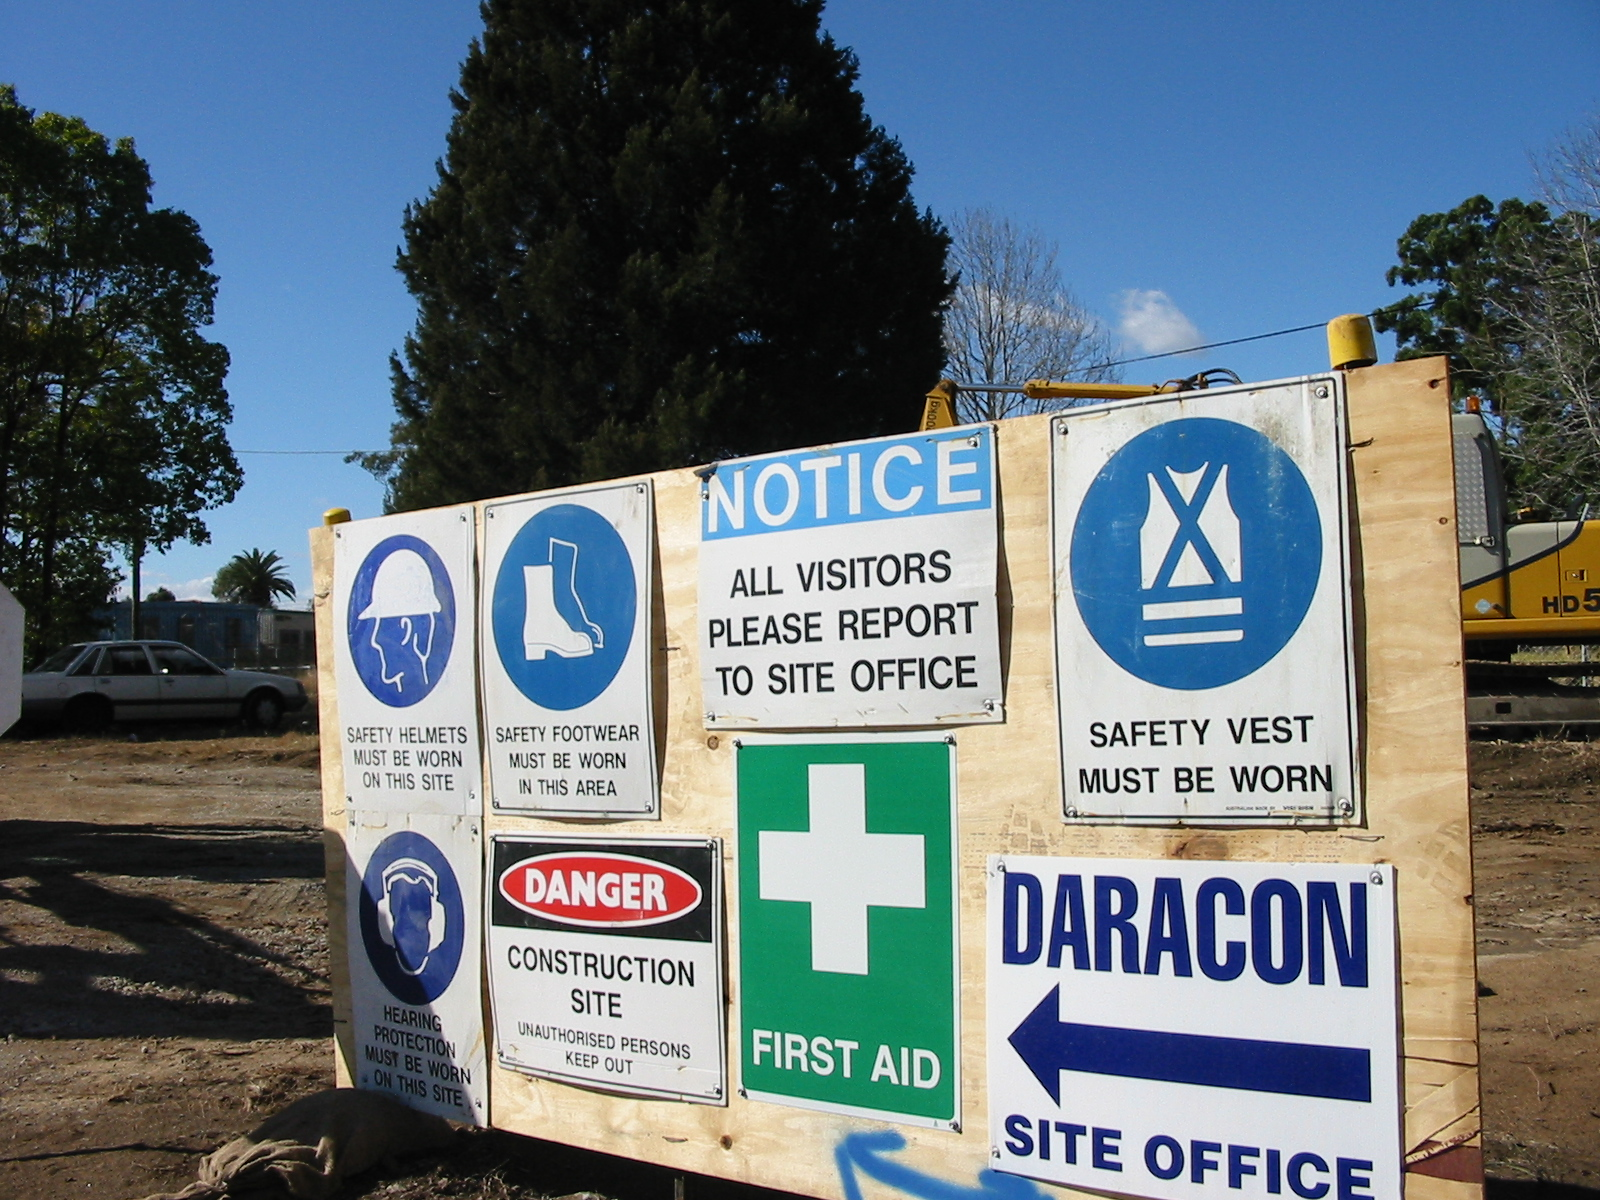 Construction site safety notices